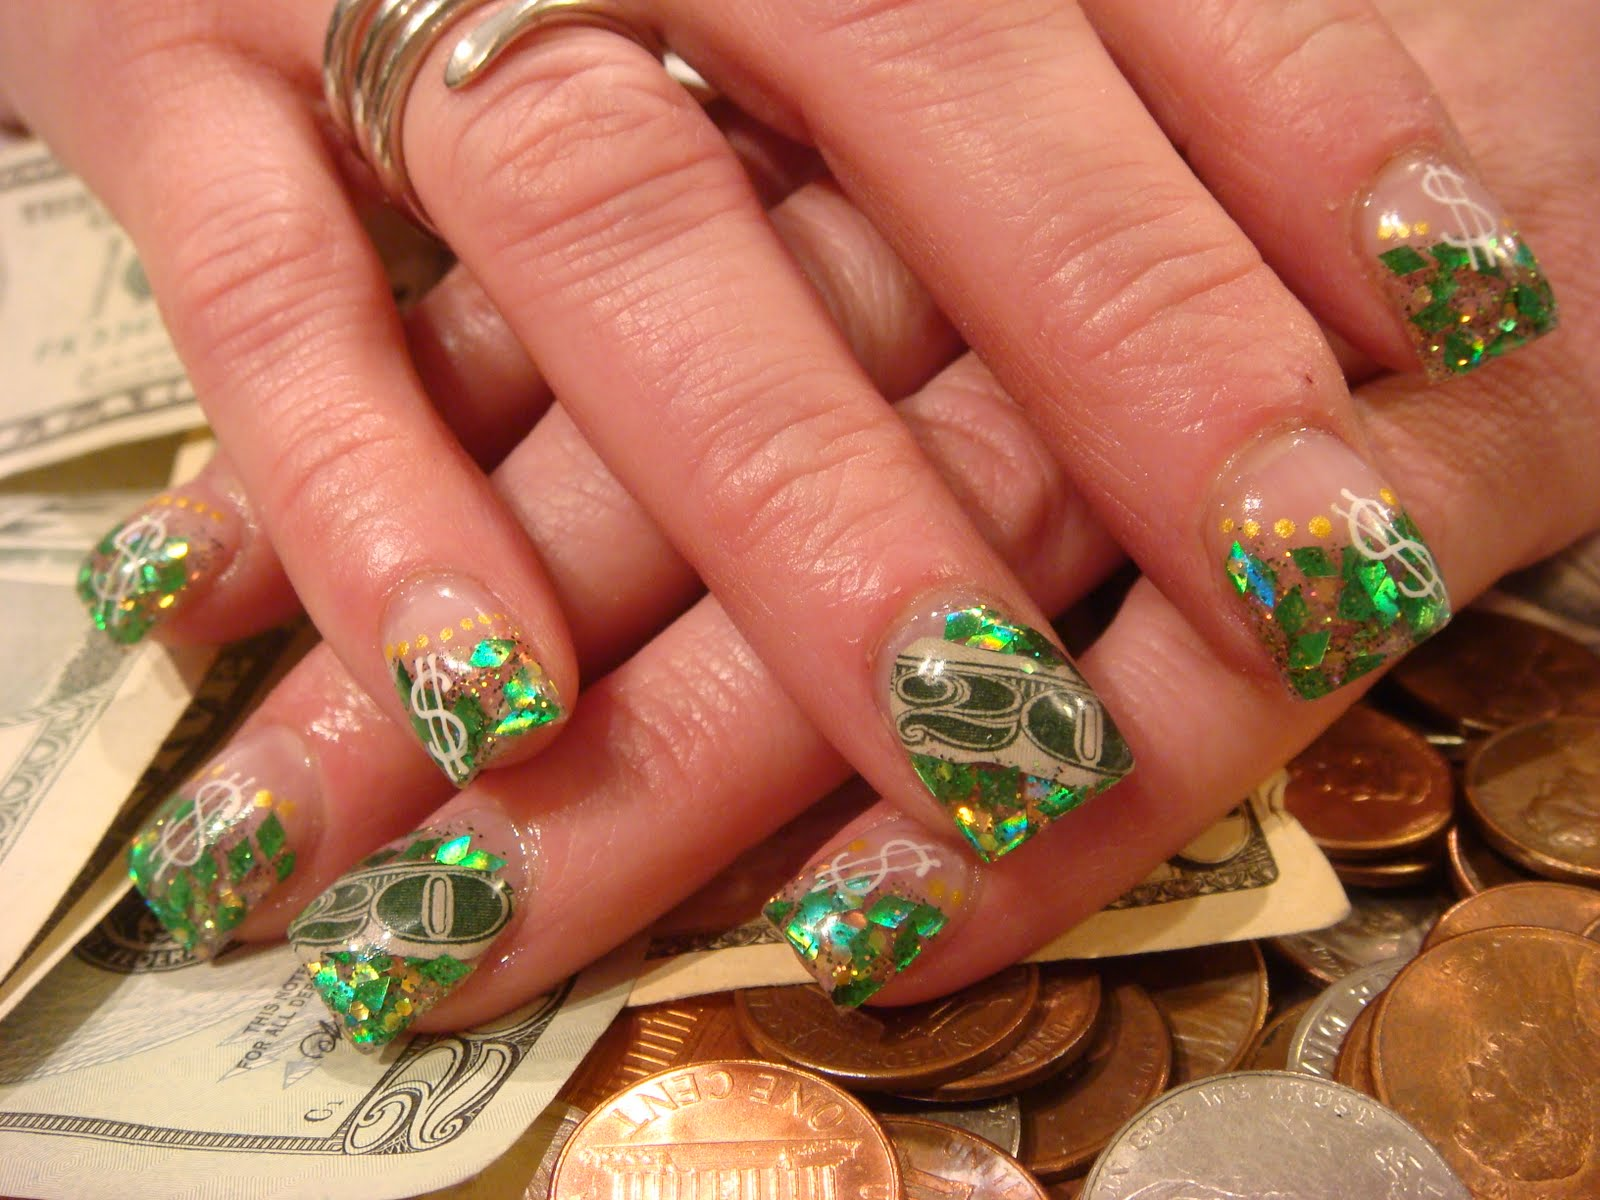 Nail art is becoming a healthy trend these days - One Quirky Blog